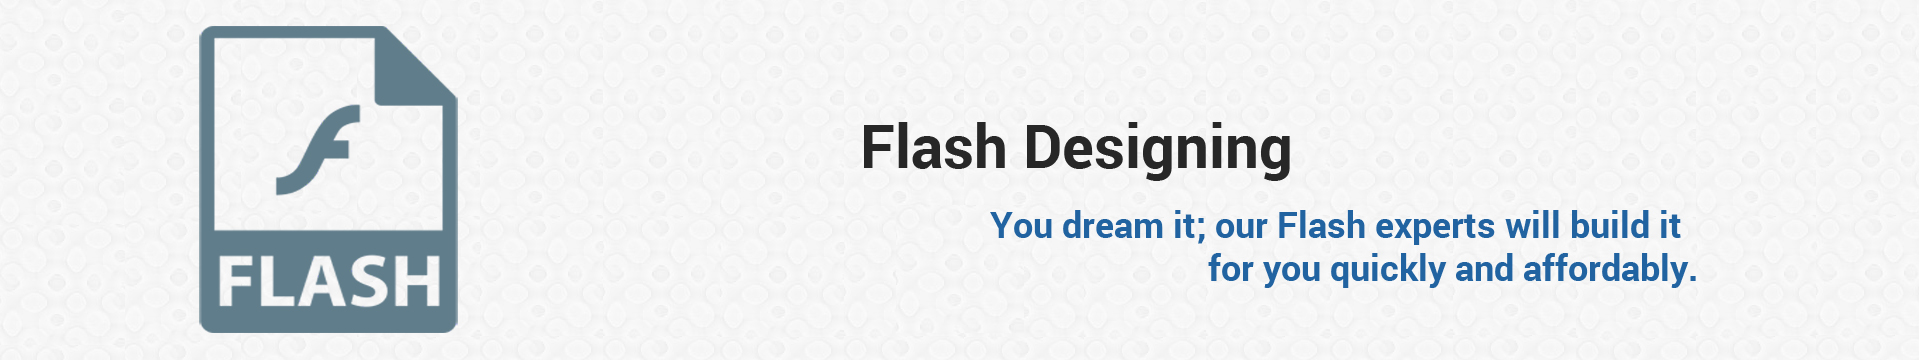 Flash Designing